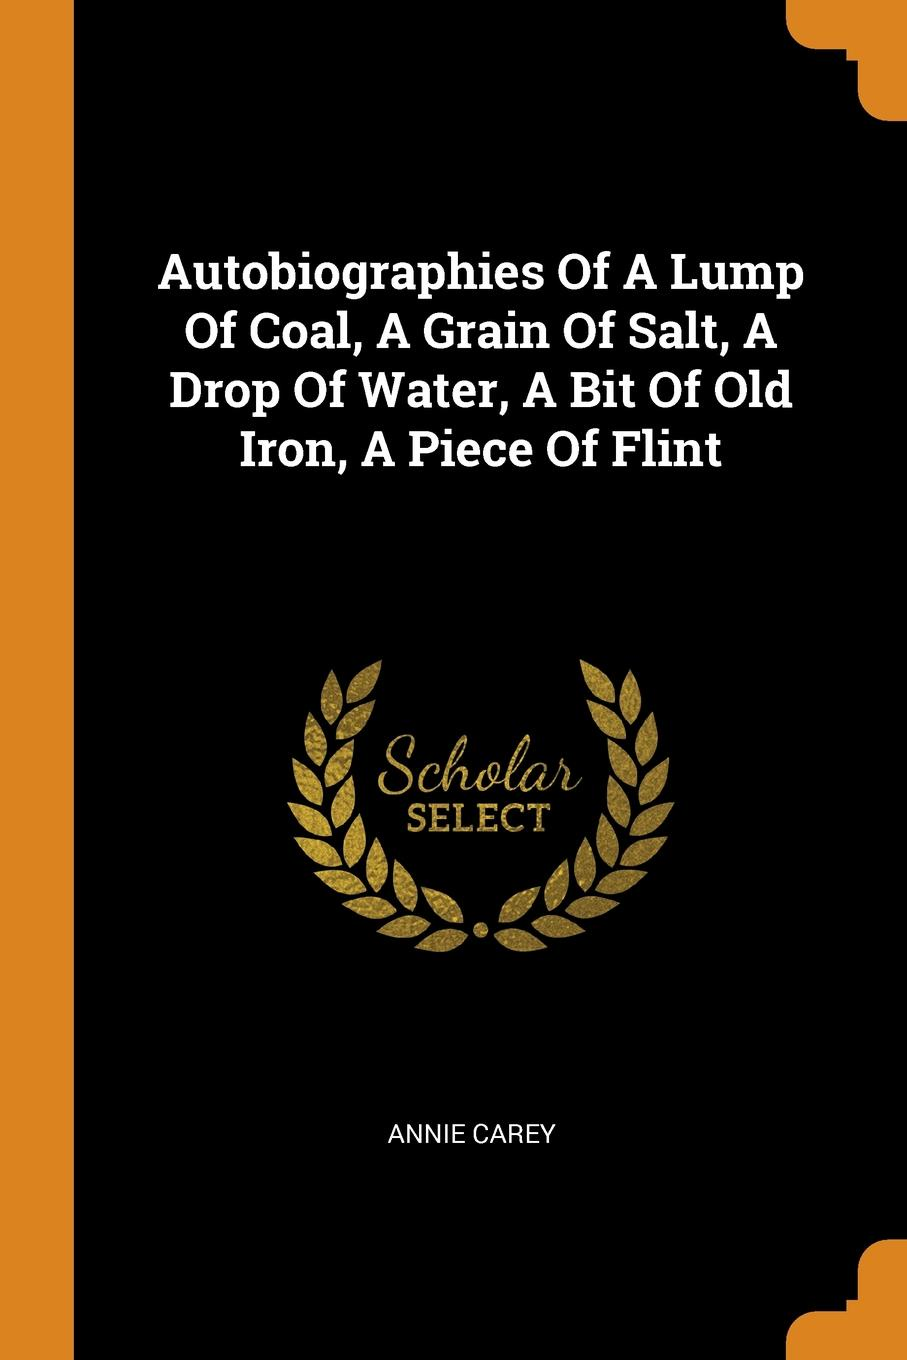 Annie Carey Autobiographies Of A Lump Of Coal, A Grain Of Salt, A Drop Of Water, A Bit Of Old Iron, A Piece Of Flint pair of vintage faux opal water drop earrings jewelry for women